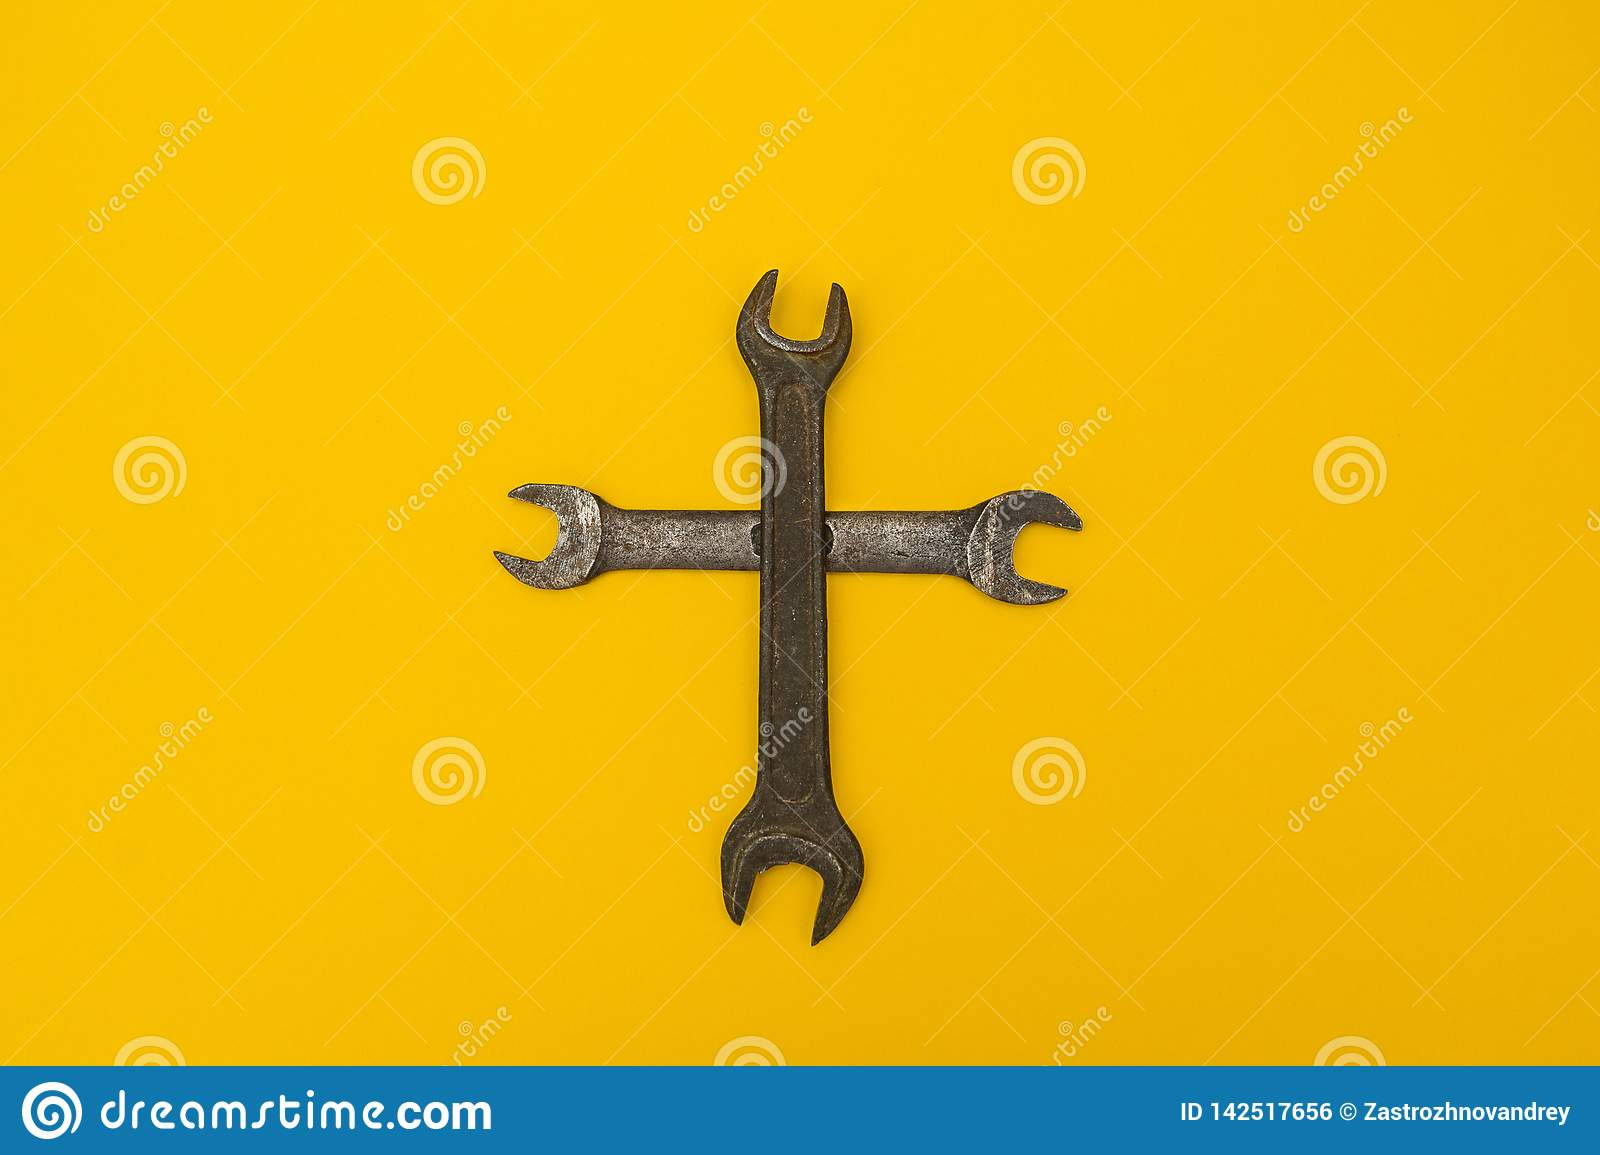 Cross of rusty keys on a yellow background